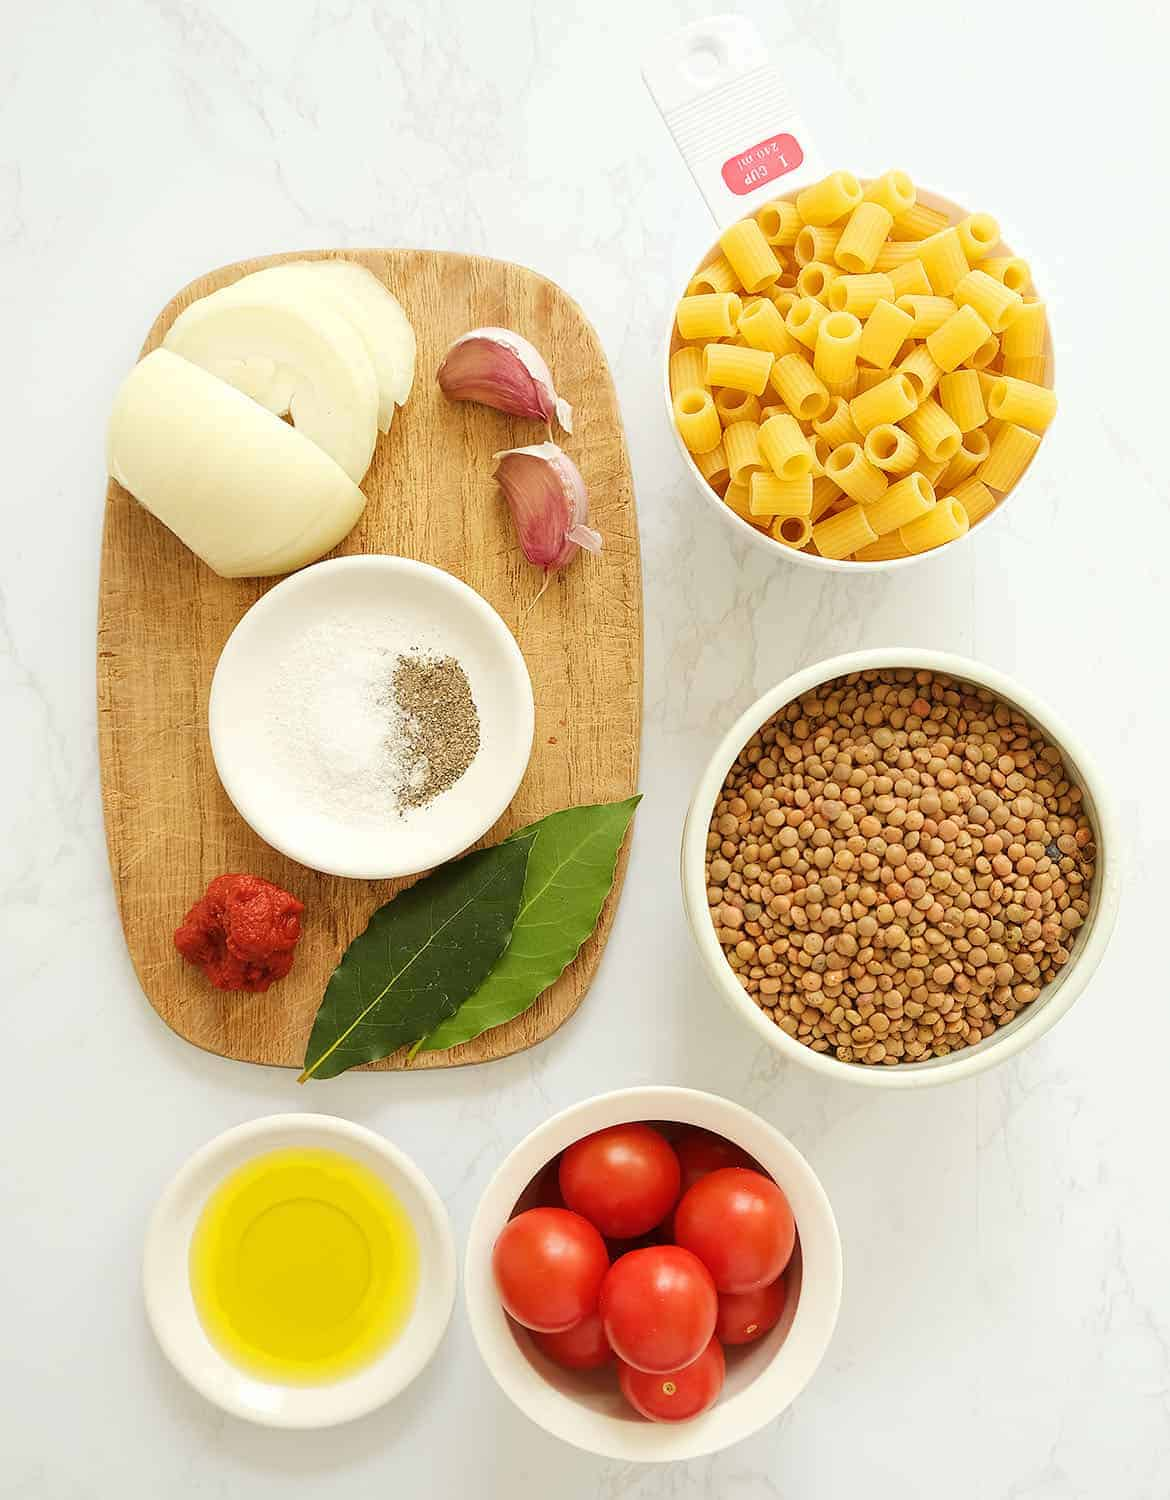 The ingredients for this pasta with lentils are arranged on a white marble table and a small wooden board.